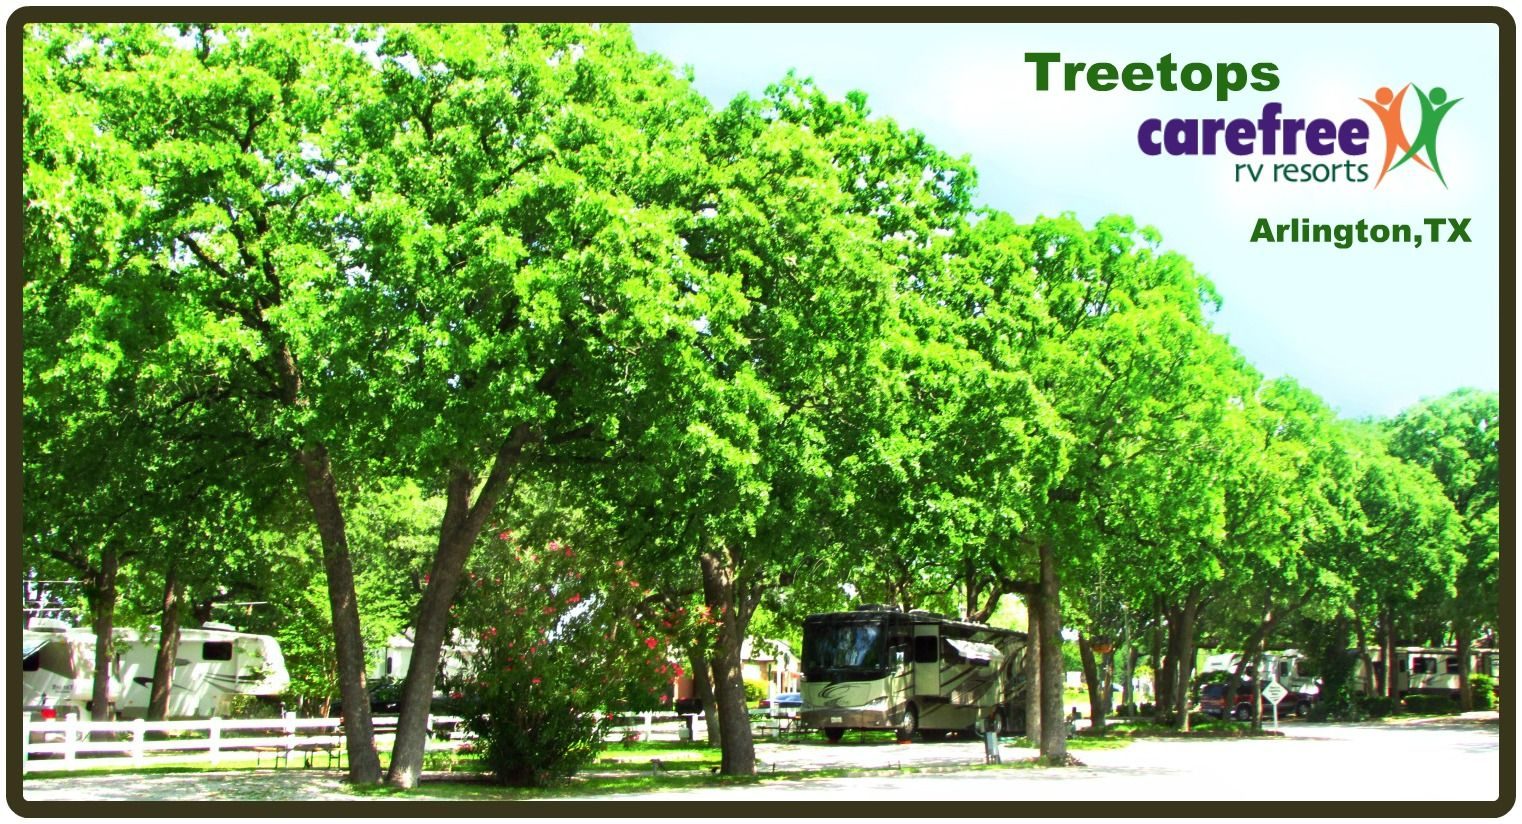 Treetops Carefree Rv Resort In Arlington Tx Click To Make